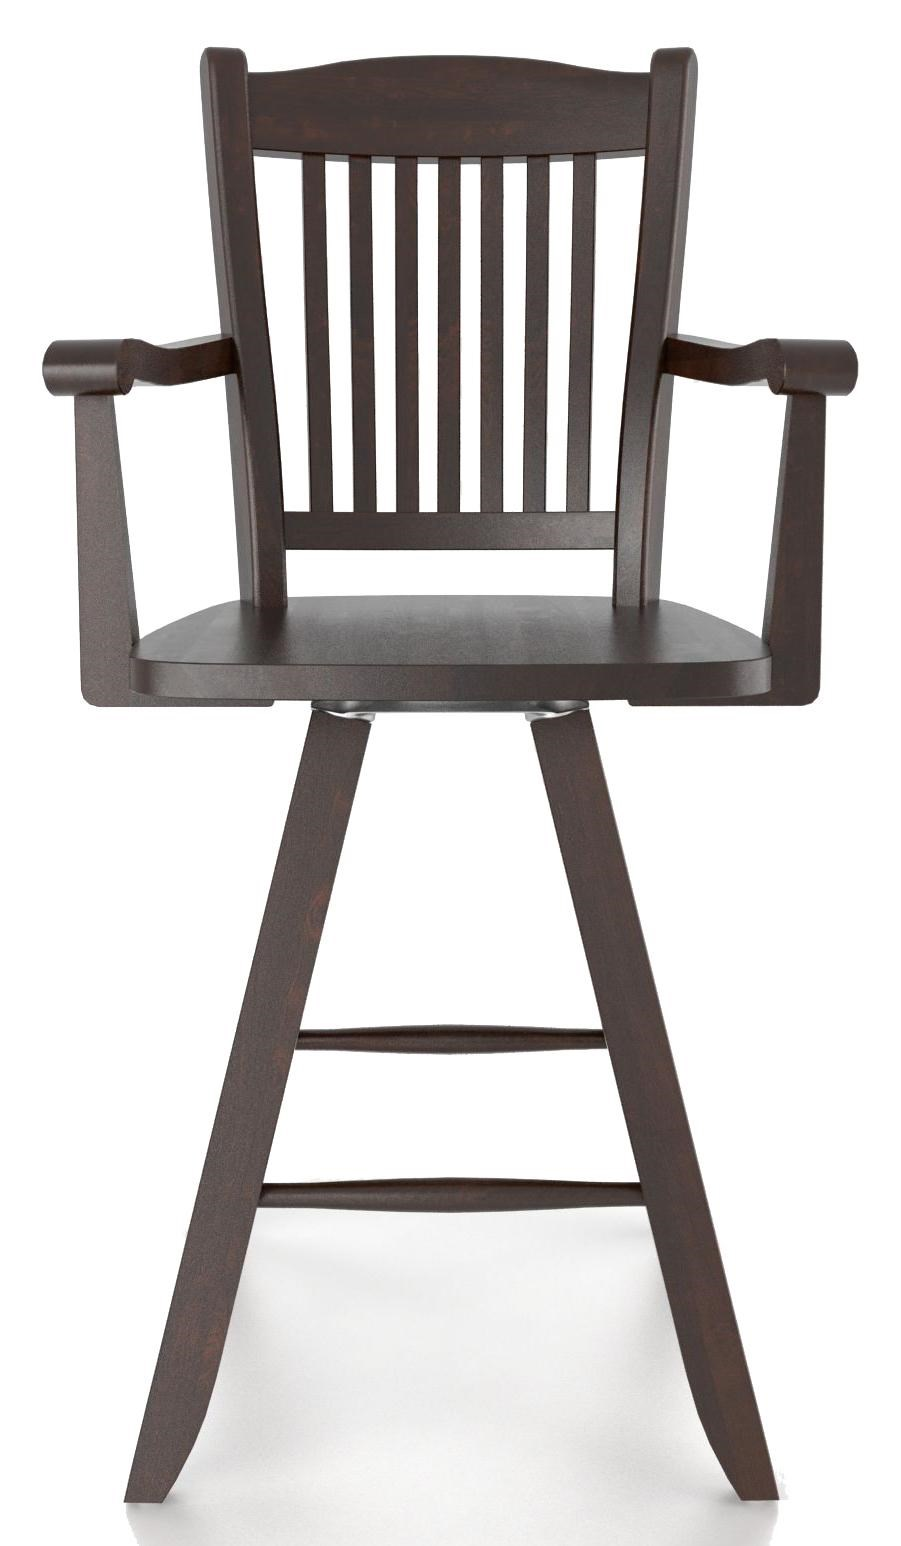 Canadel Bar Stools Customizable 24 Swivel Stool With Arms Turk